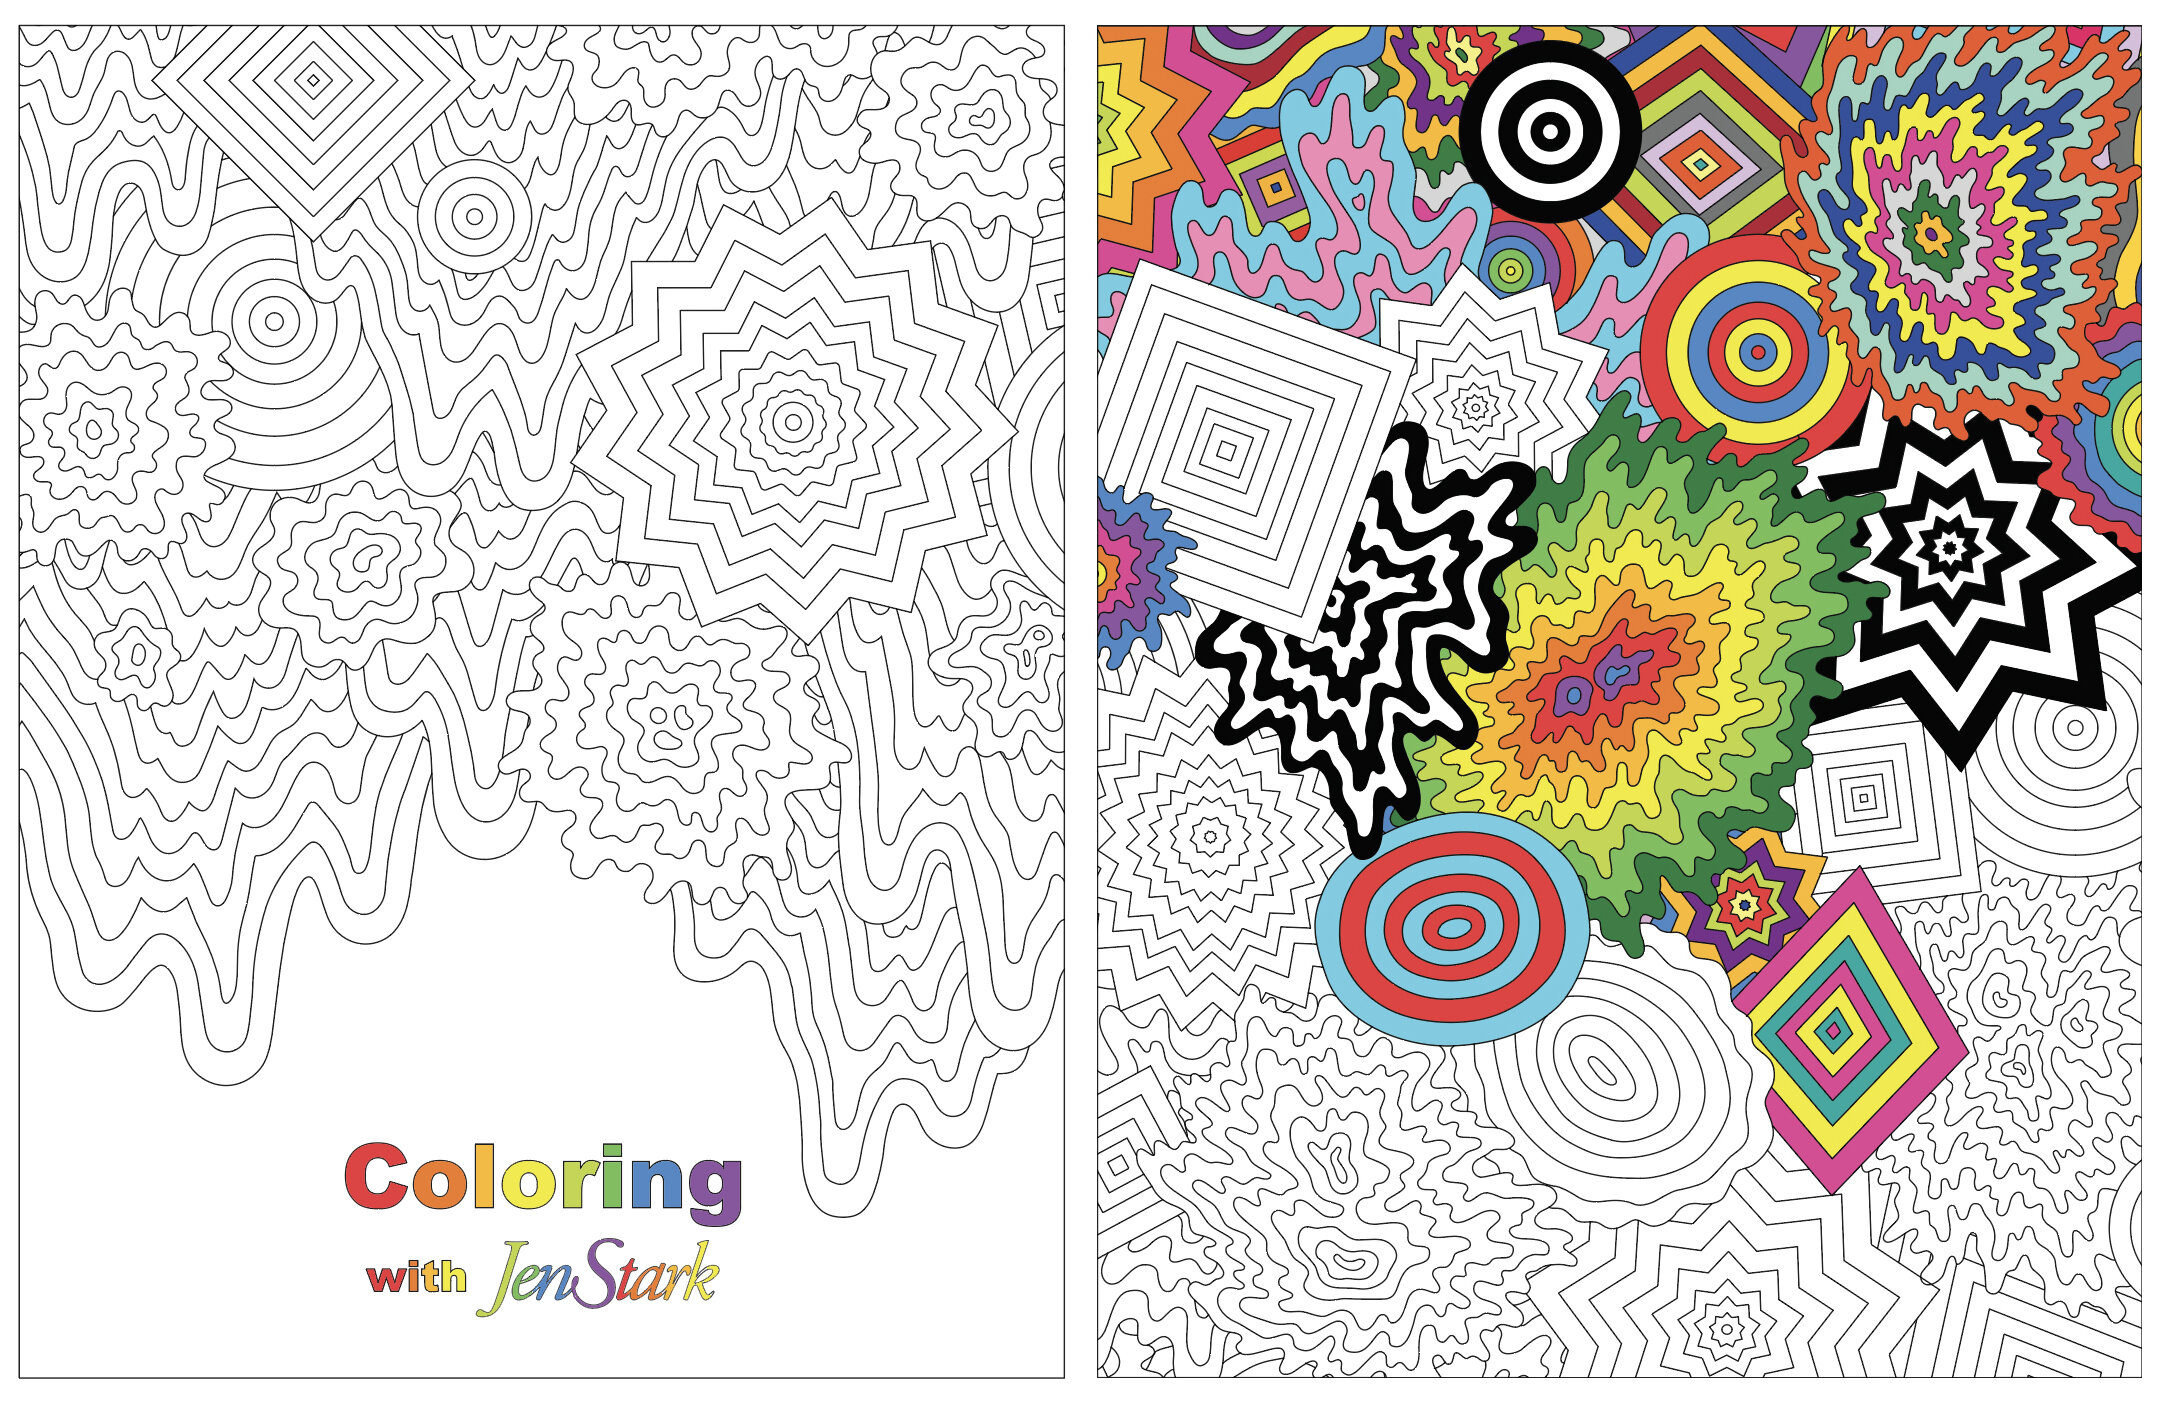 - Print Your Own Coloring Book — Jen Stark